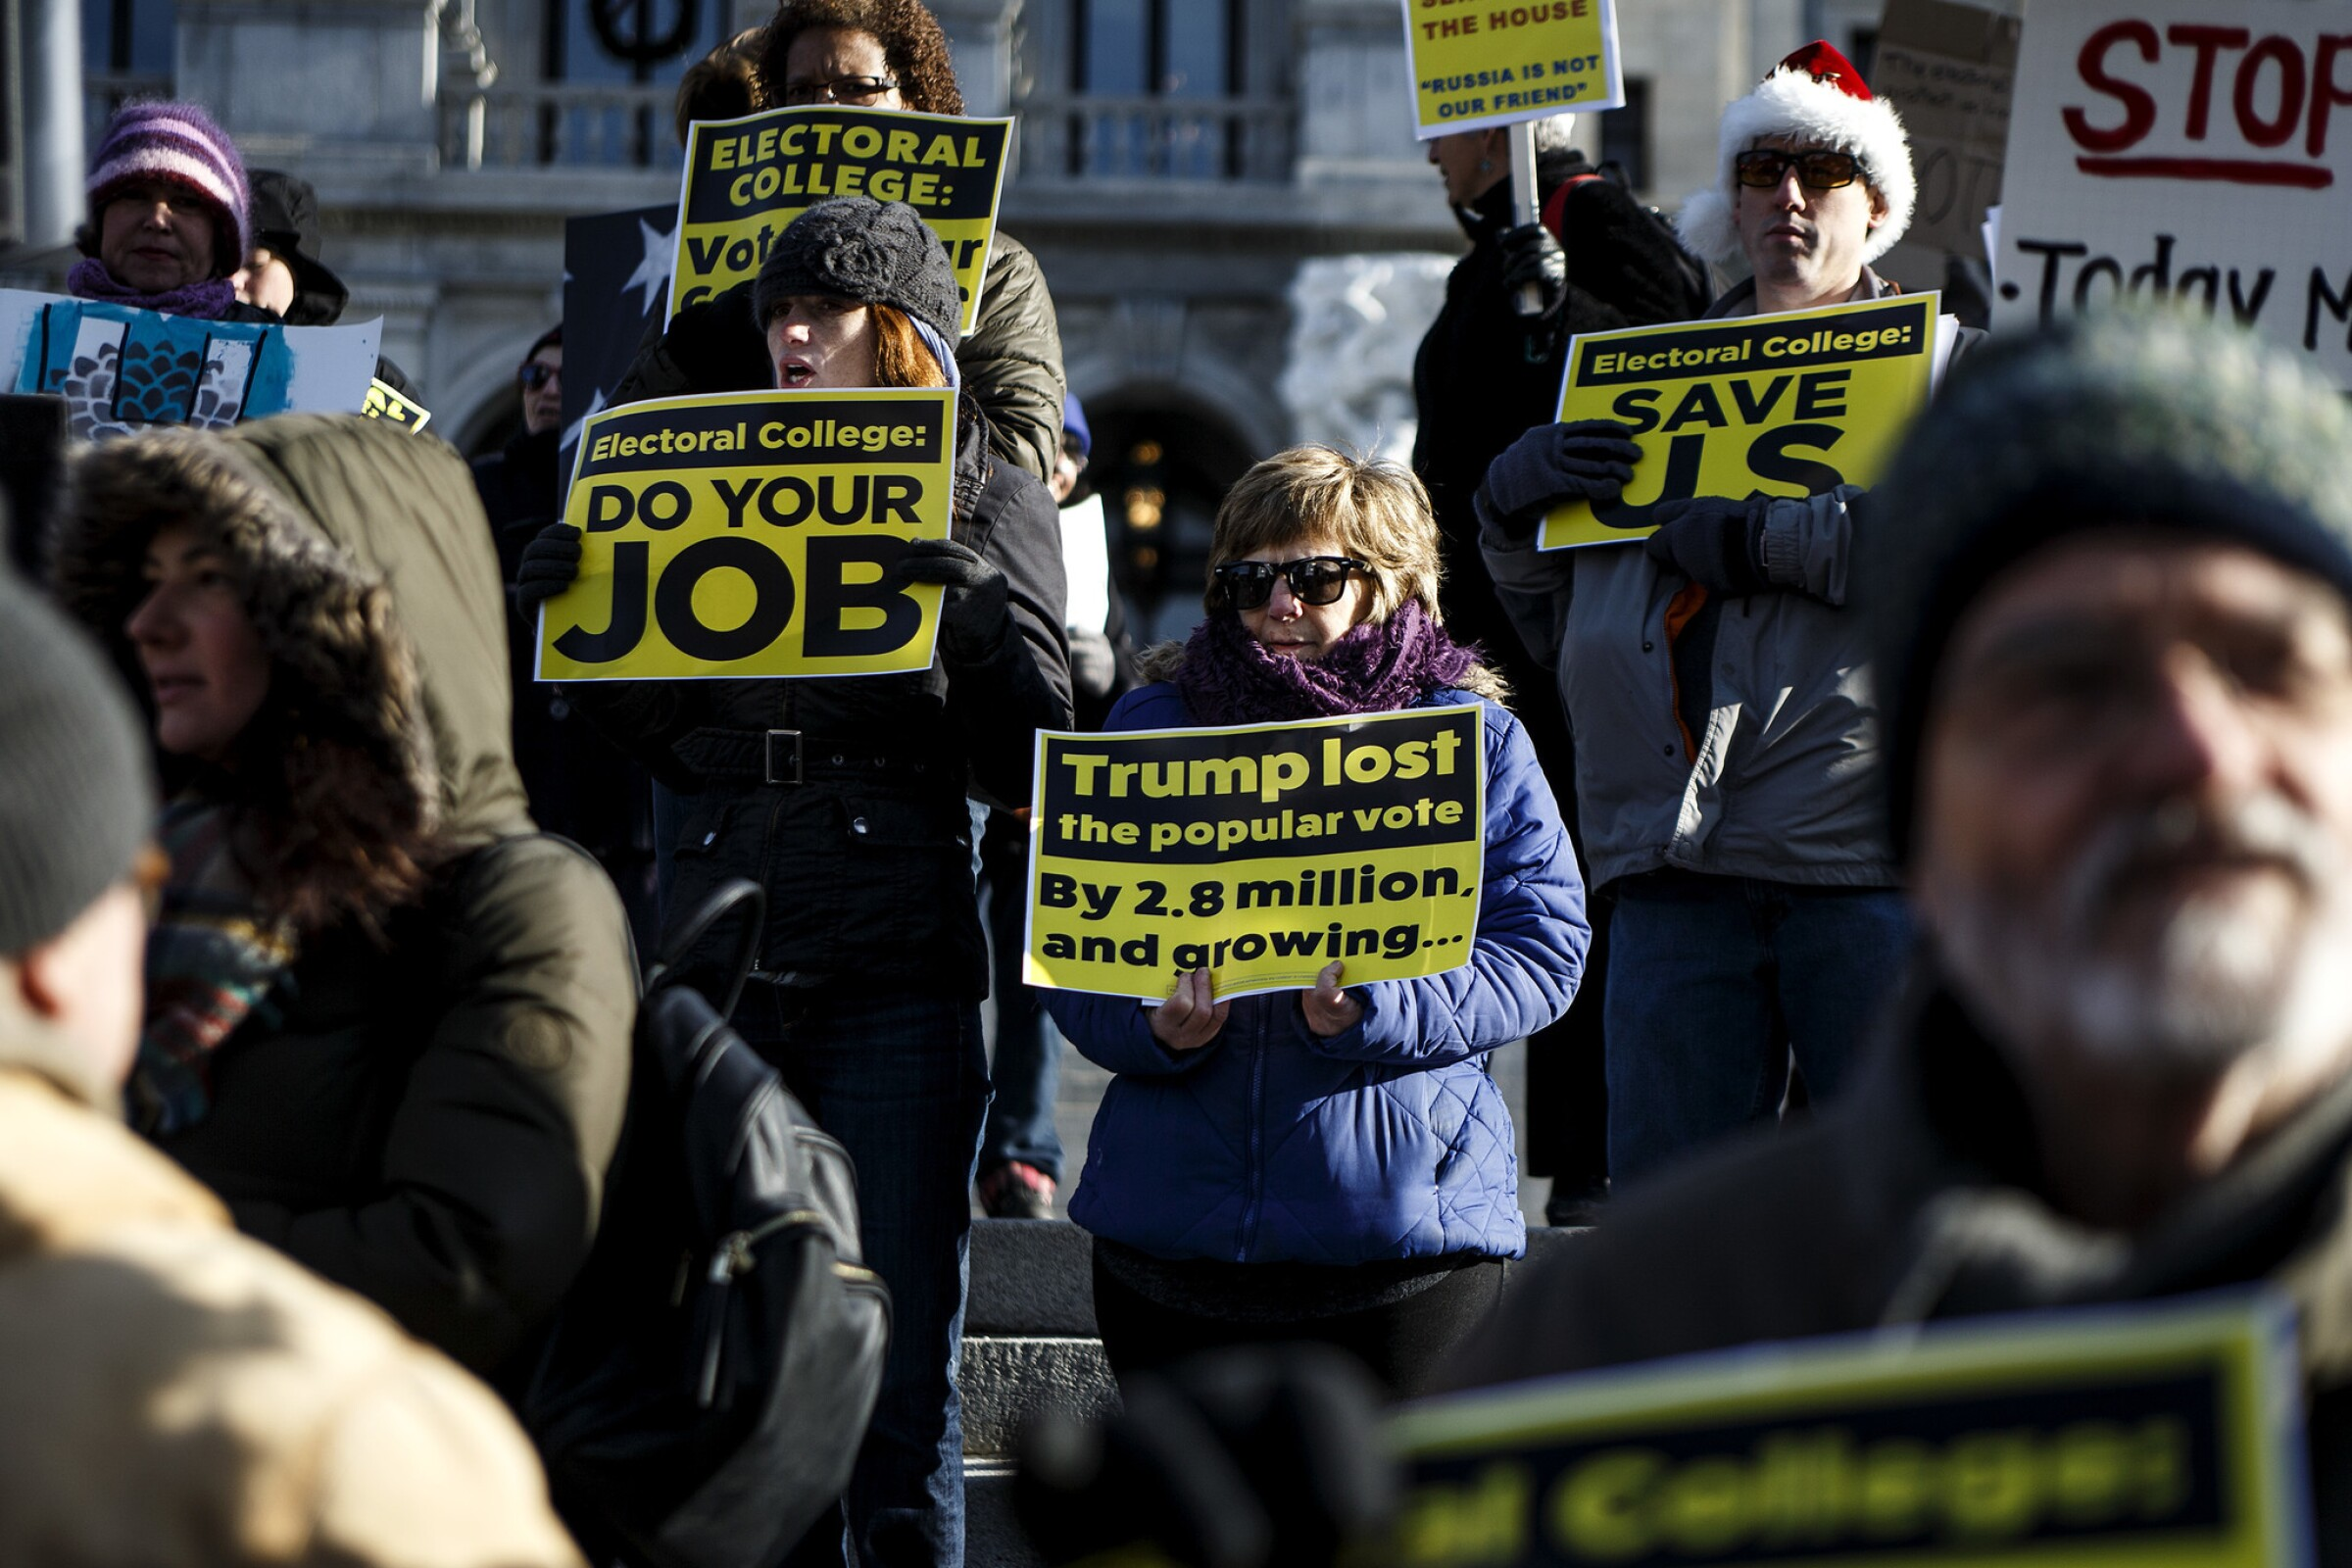 Protesters in Pennsylvania demonstrate against an electoral college victory for Donald Trump.